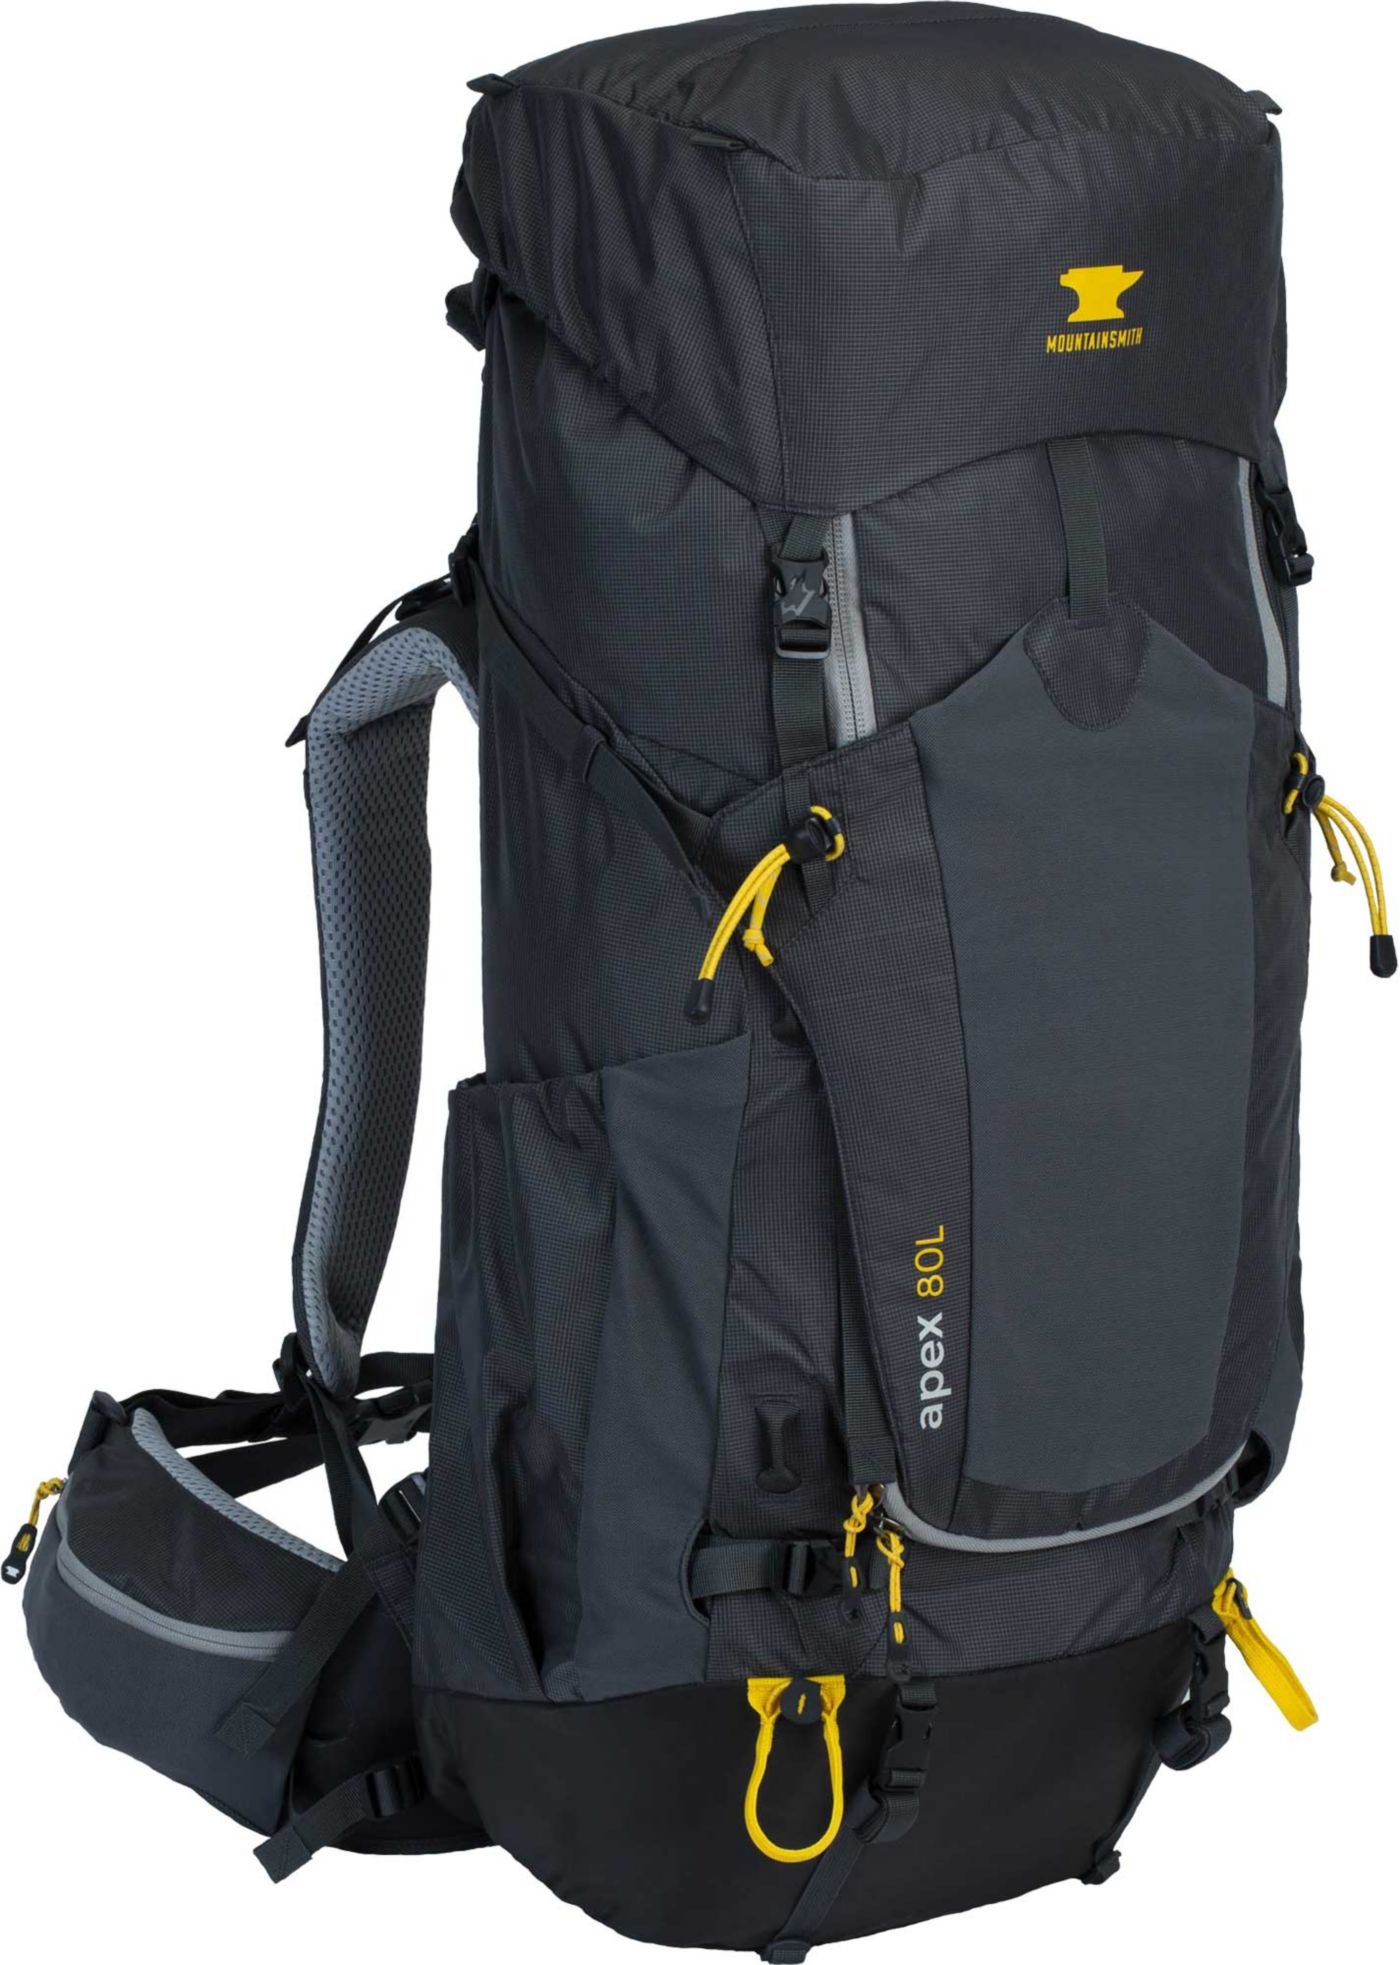 Mountainsmith Apex 80L Internal Frame Pack